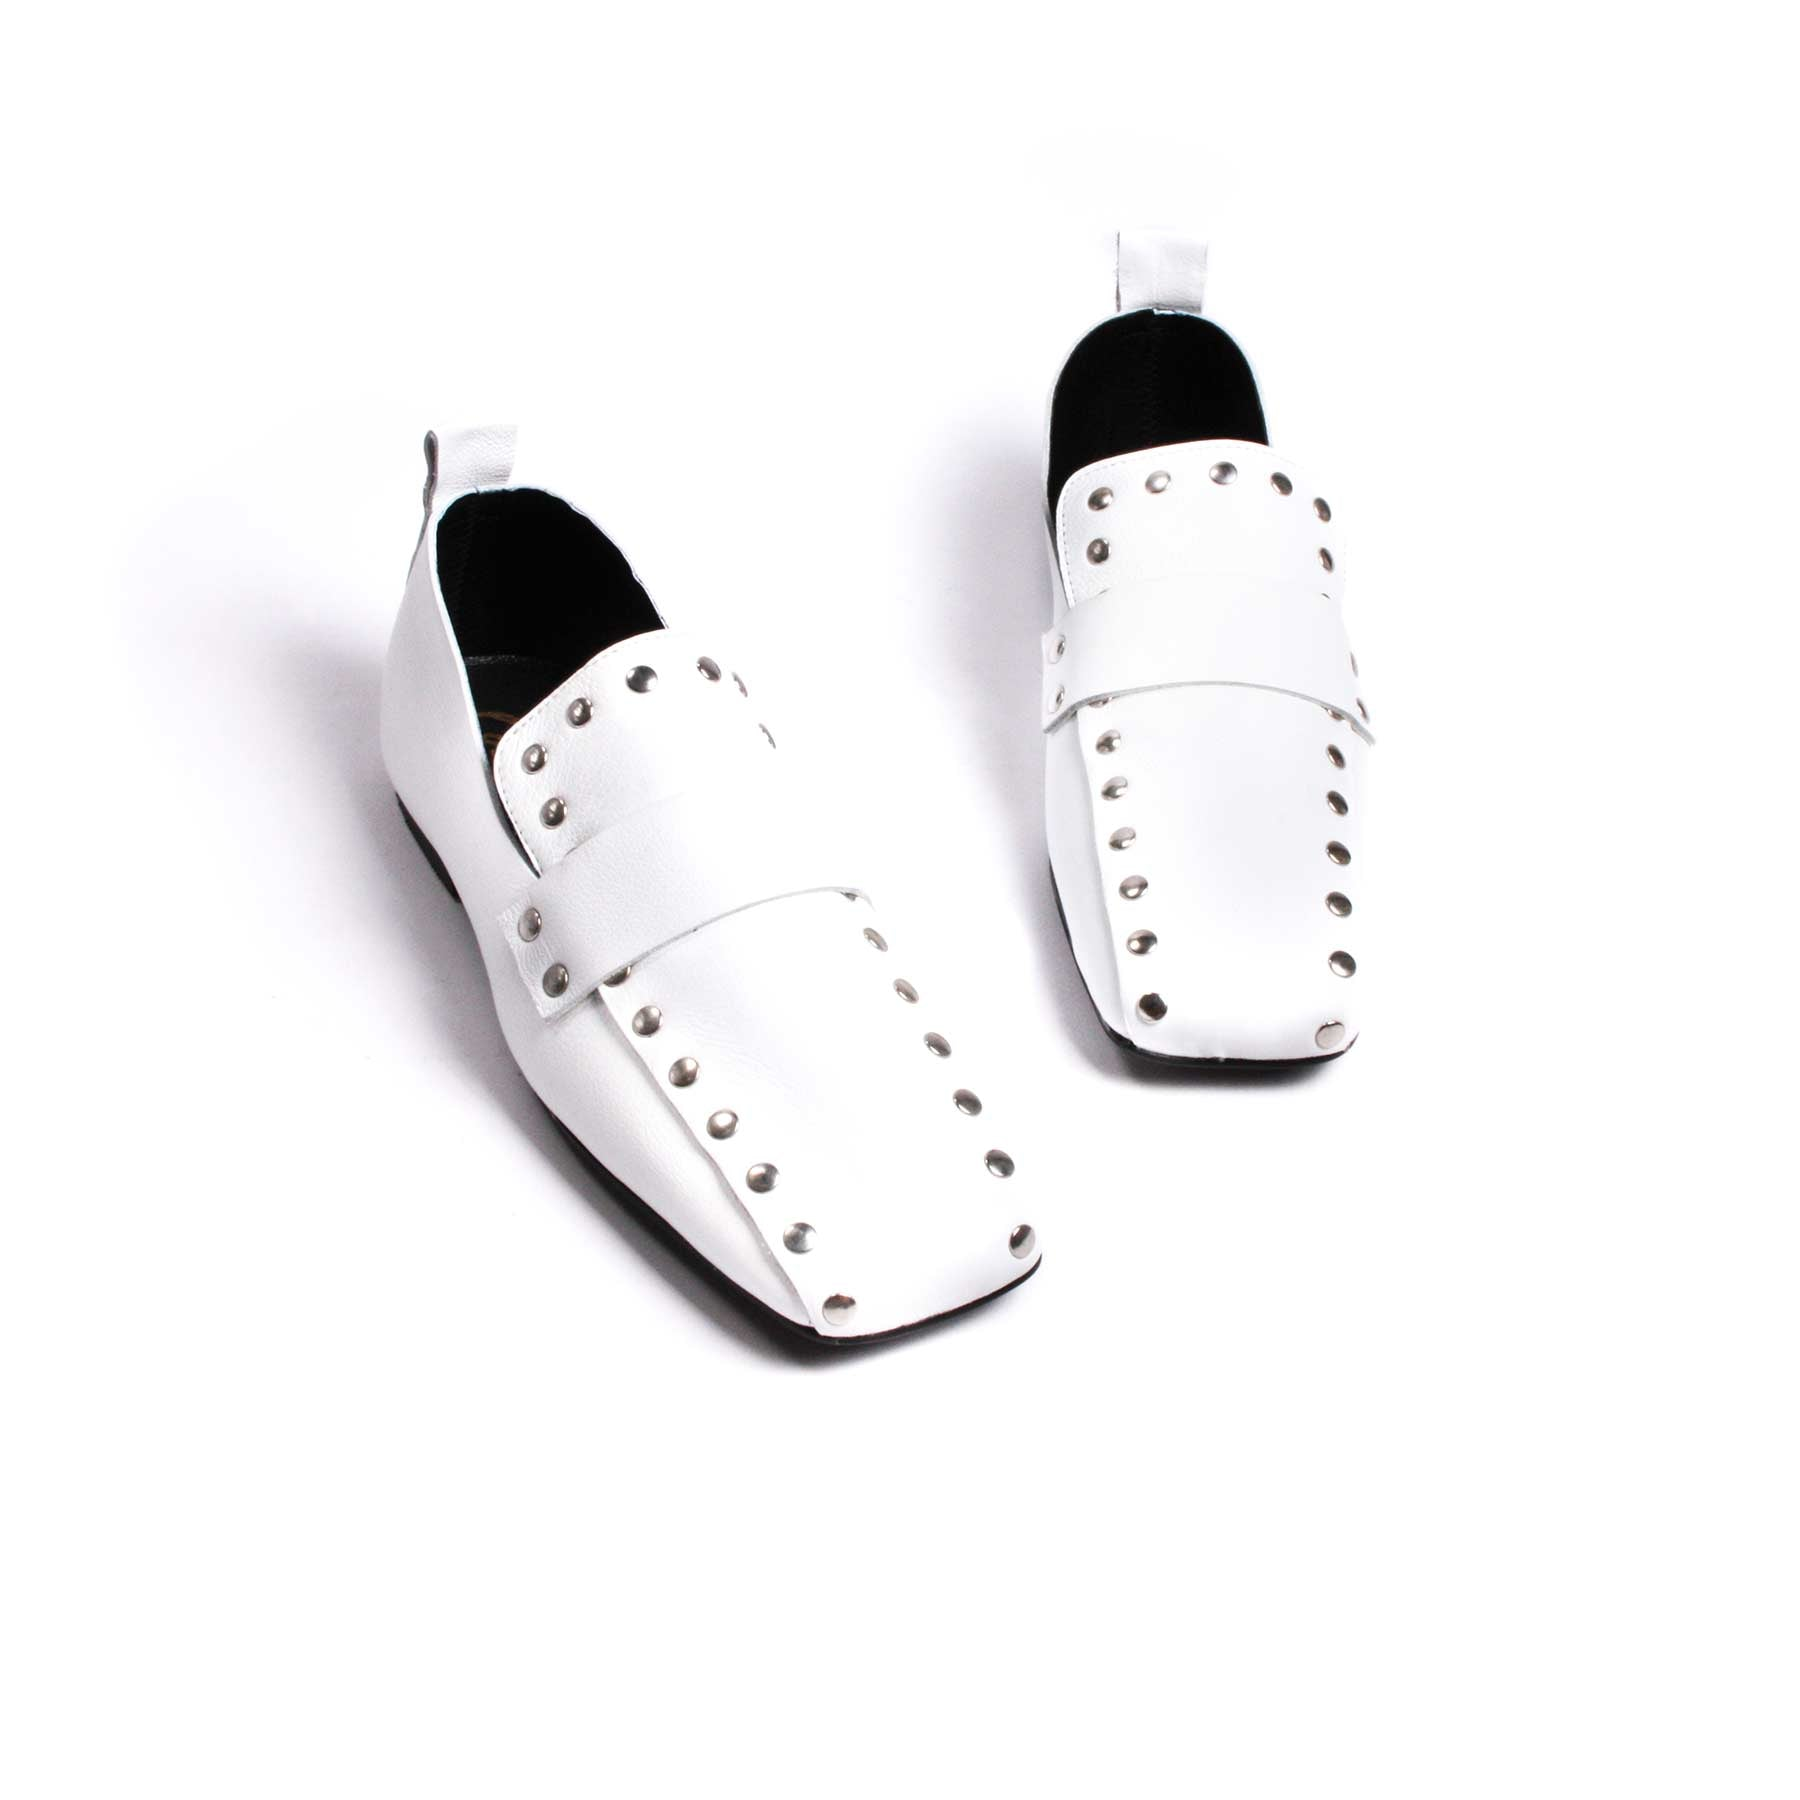 Shoes, Ego White Leather - Lintervalle shoes for woman